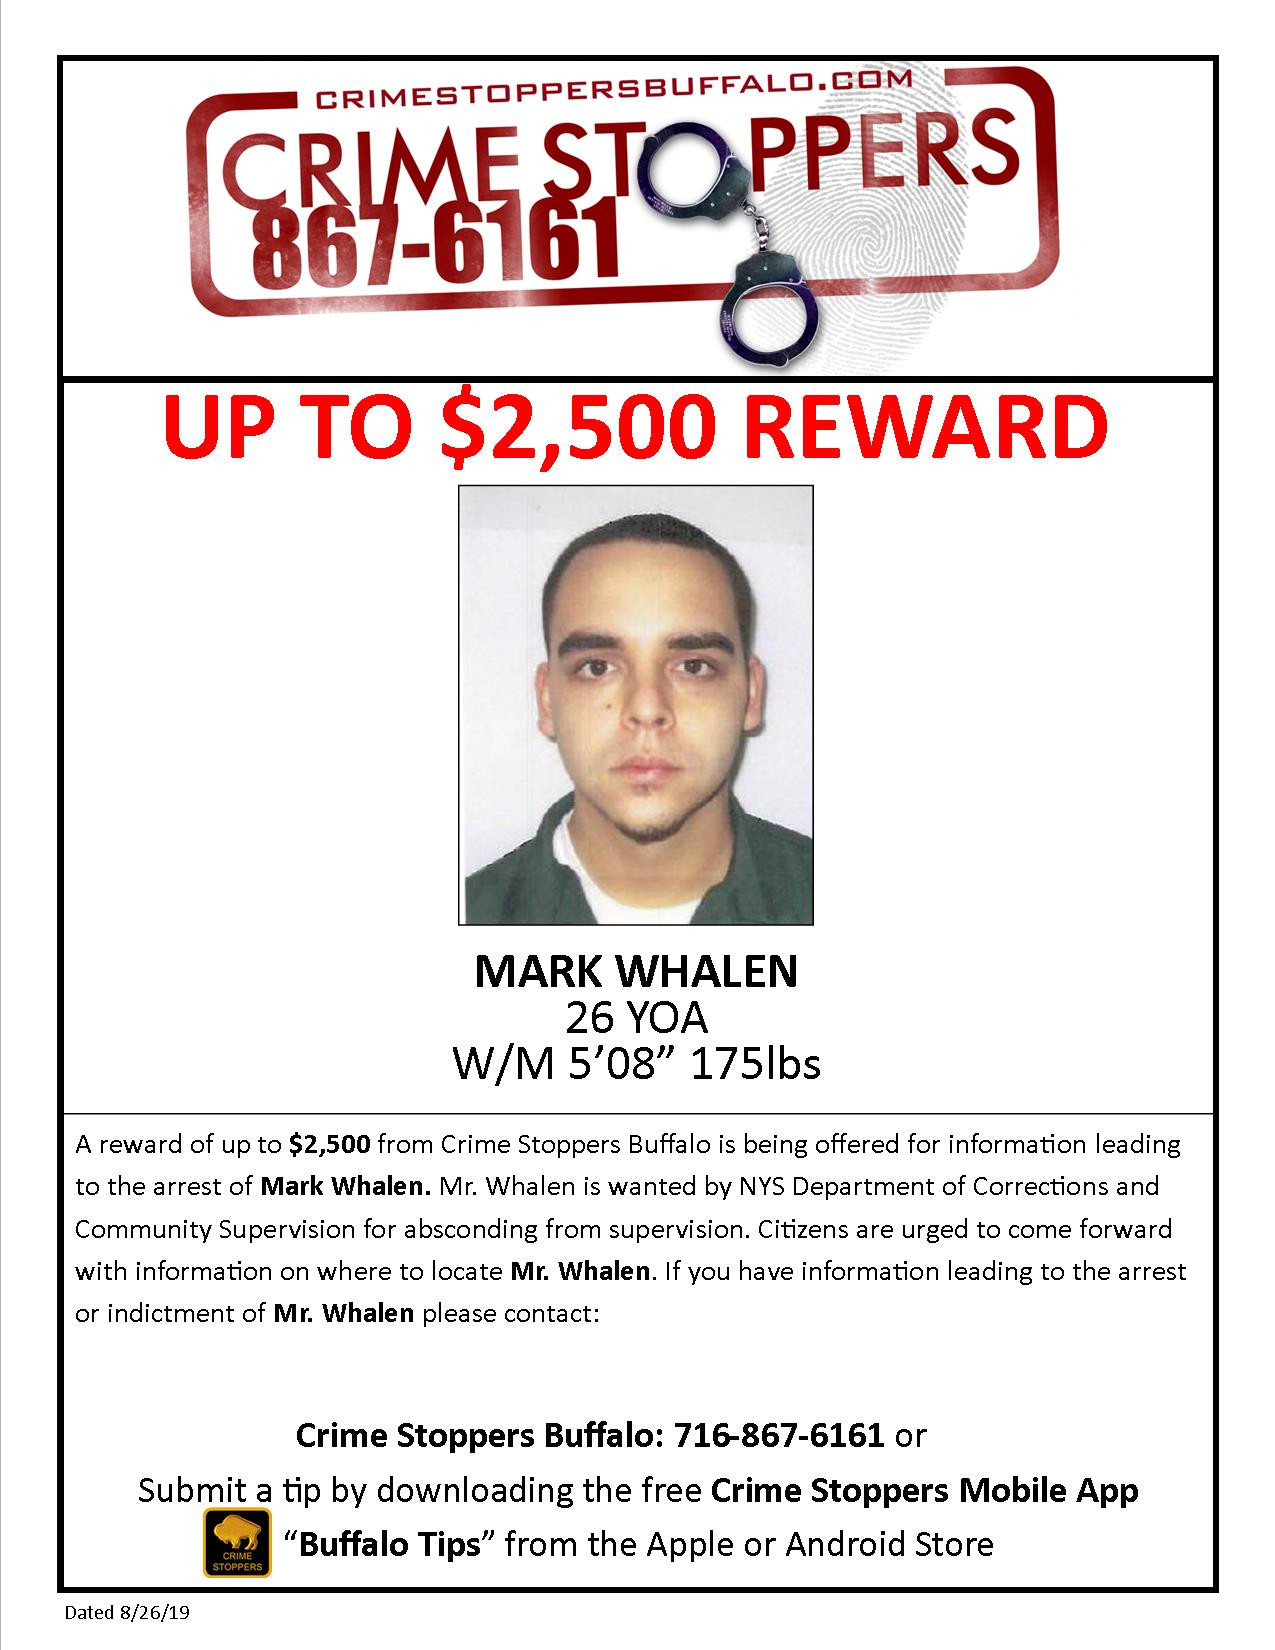 CrimeStoppers_MarkWhalen_8.26.19